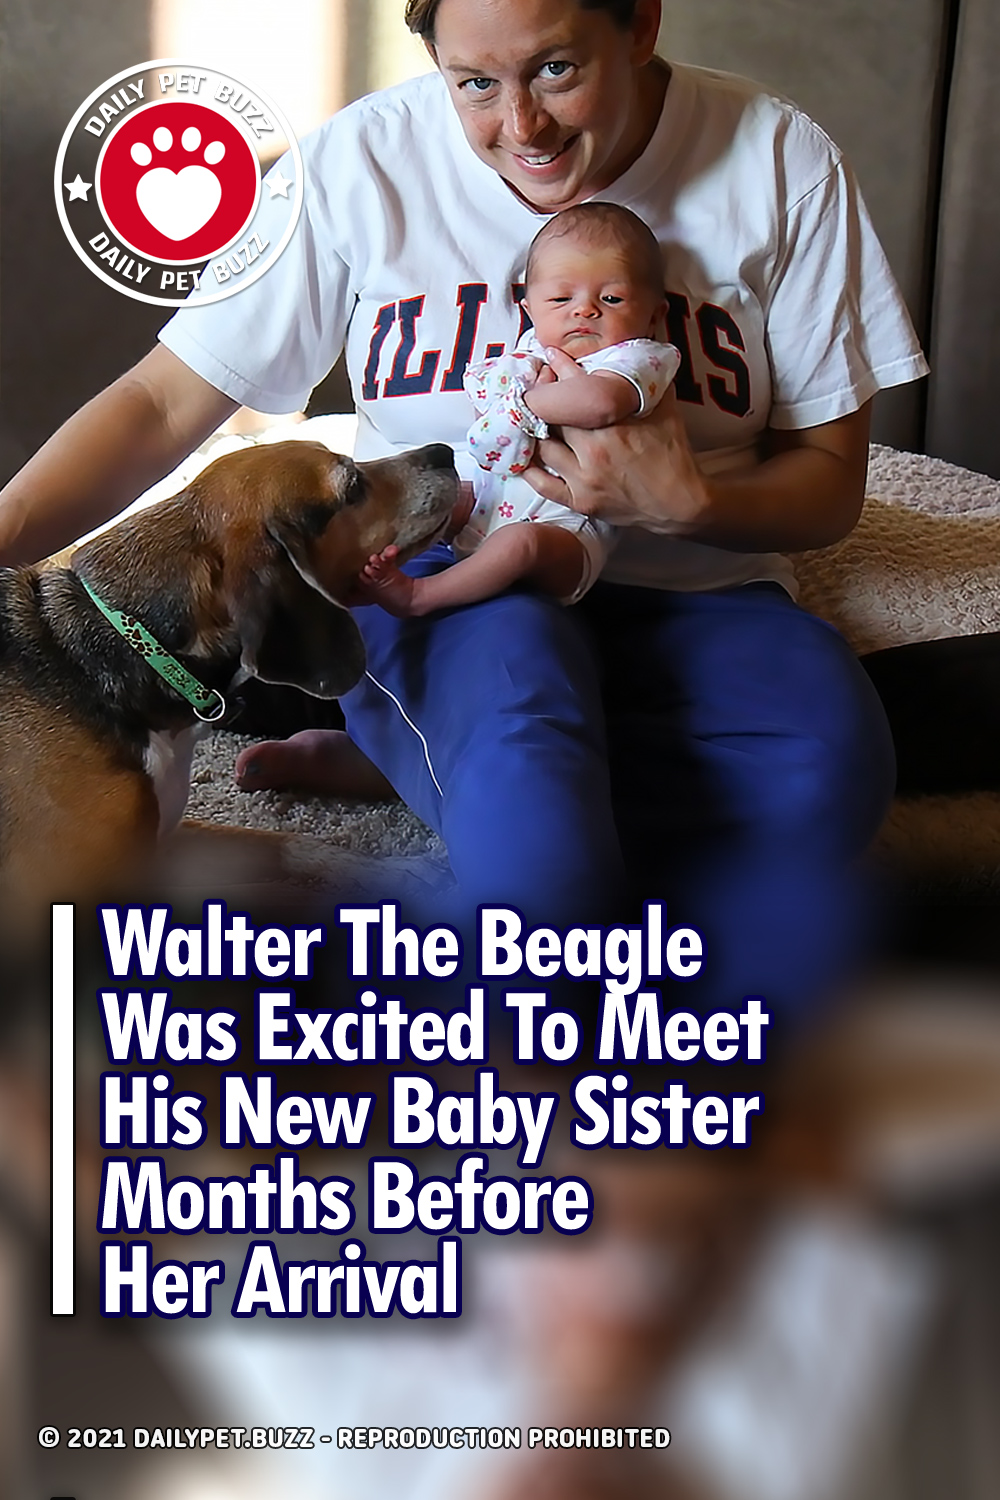 Walter The Beagle Was Excited To Meet His New Baby Sister Months Before Her Arrival